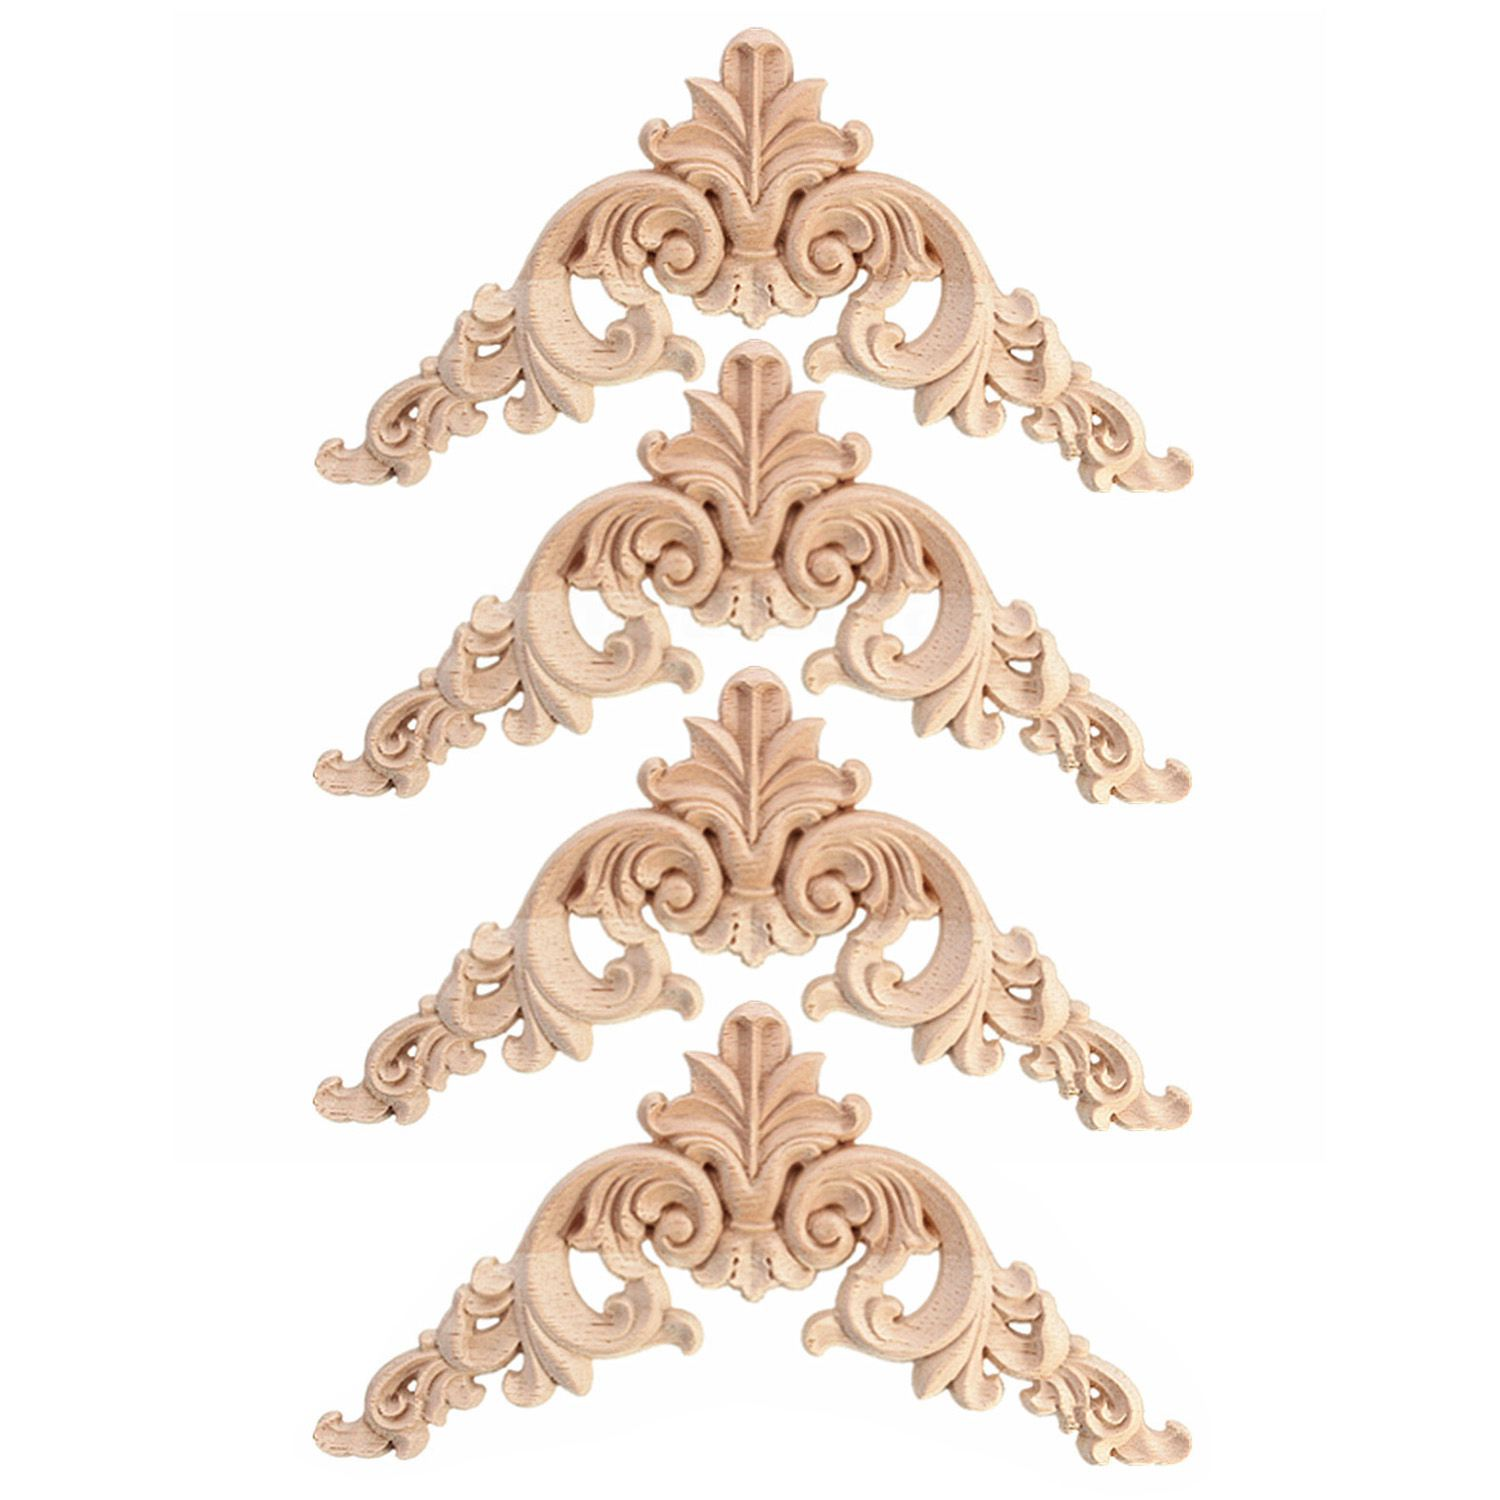 HOT SALE 4pcs Rubber Wood Oak Carved Corner Onlay Applique Furniture Home Door Decor DIY